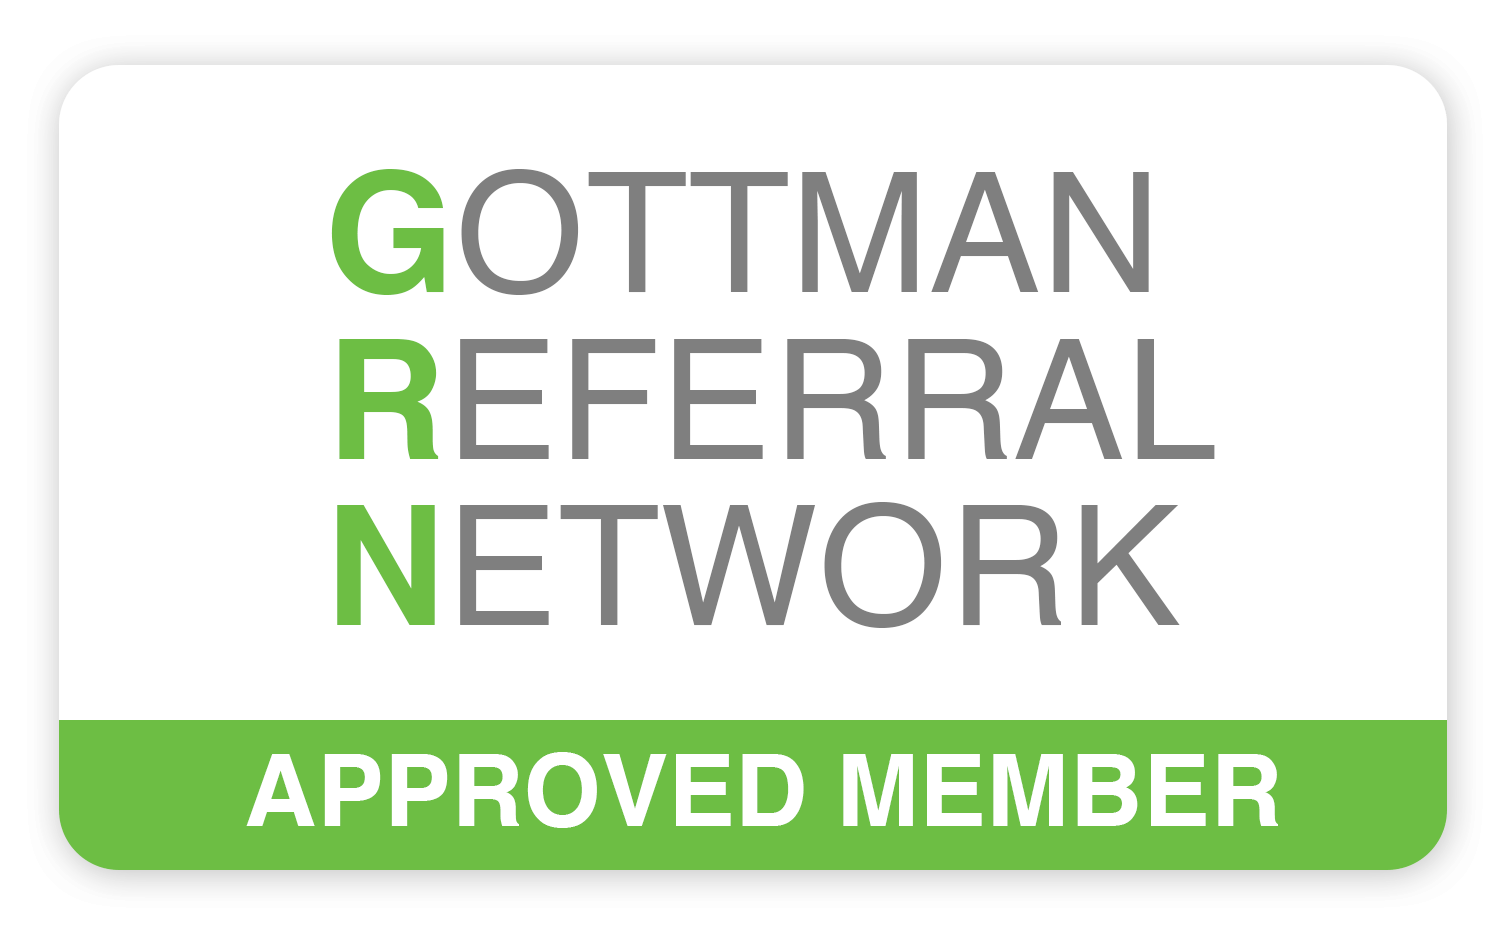 Stephanie Little Brave's profile on the Gottman Referral Network